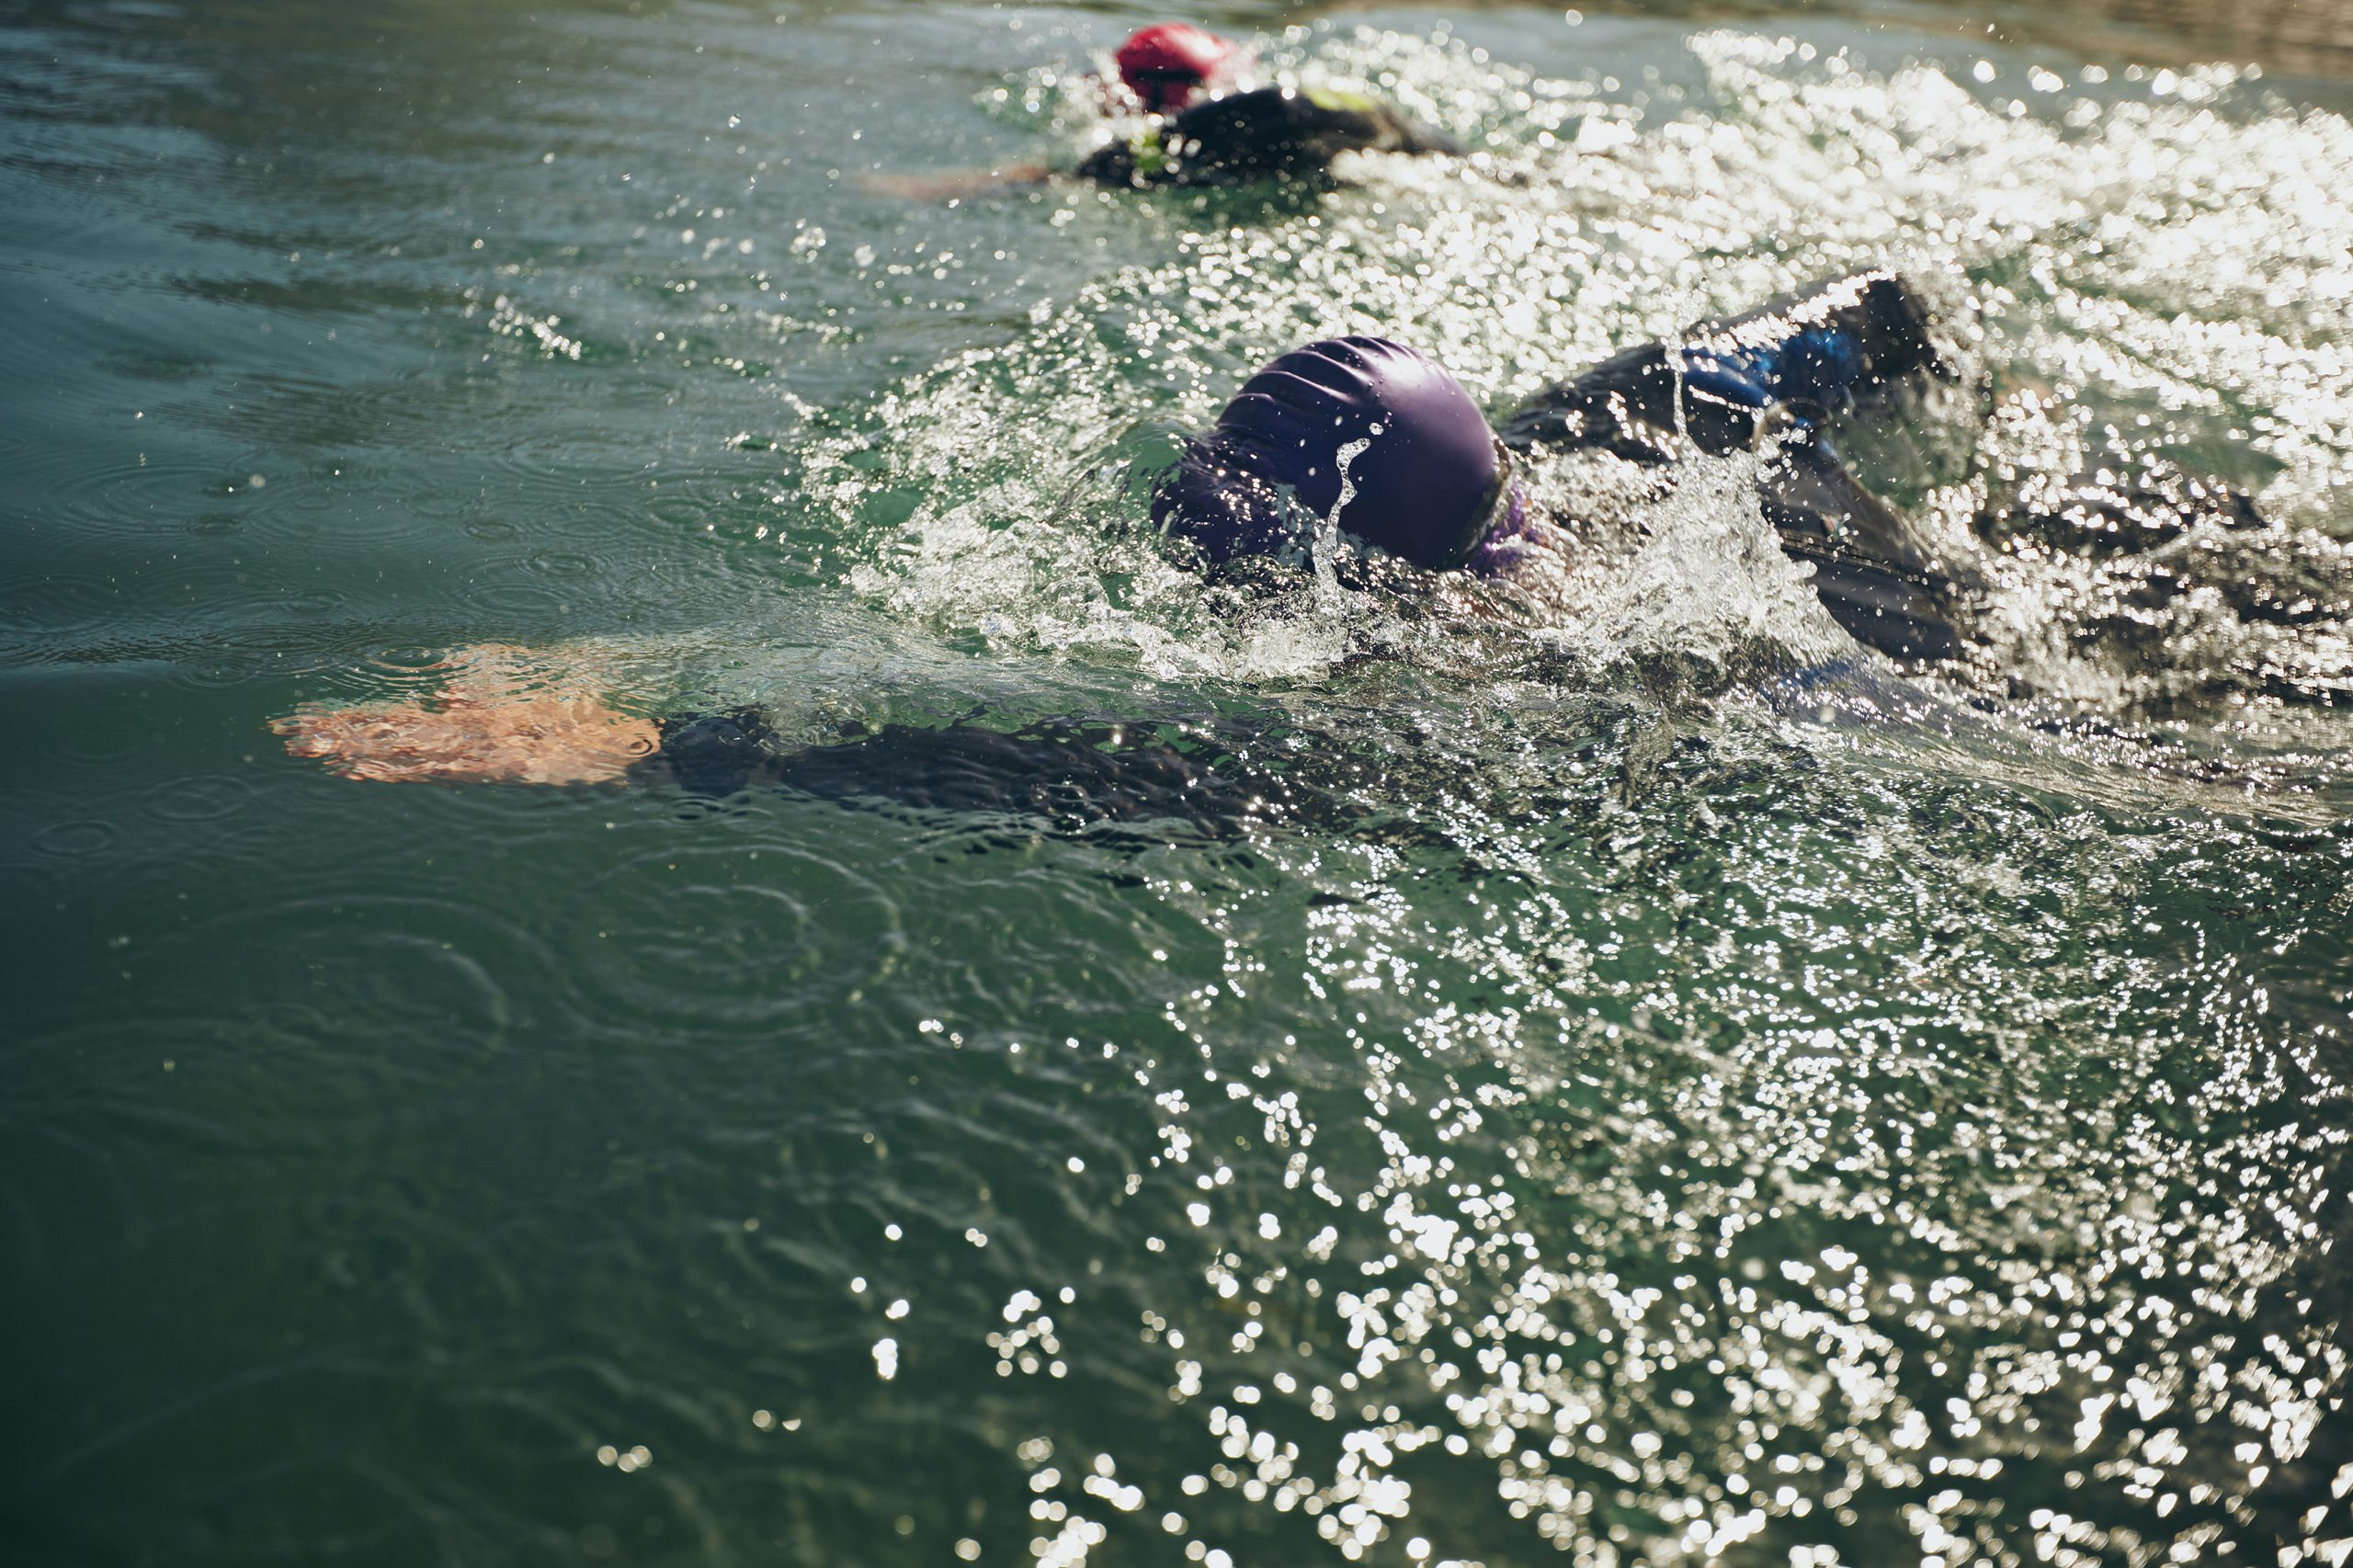 PRESS RELEASE: Welsh Water takes the plunge with open water swimming